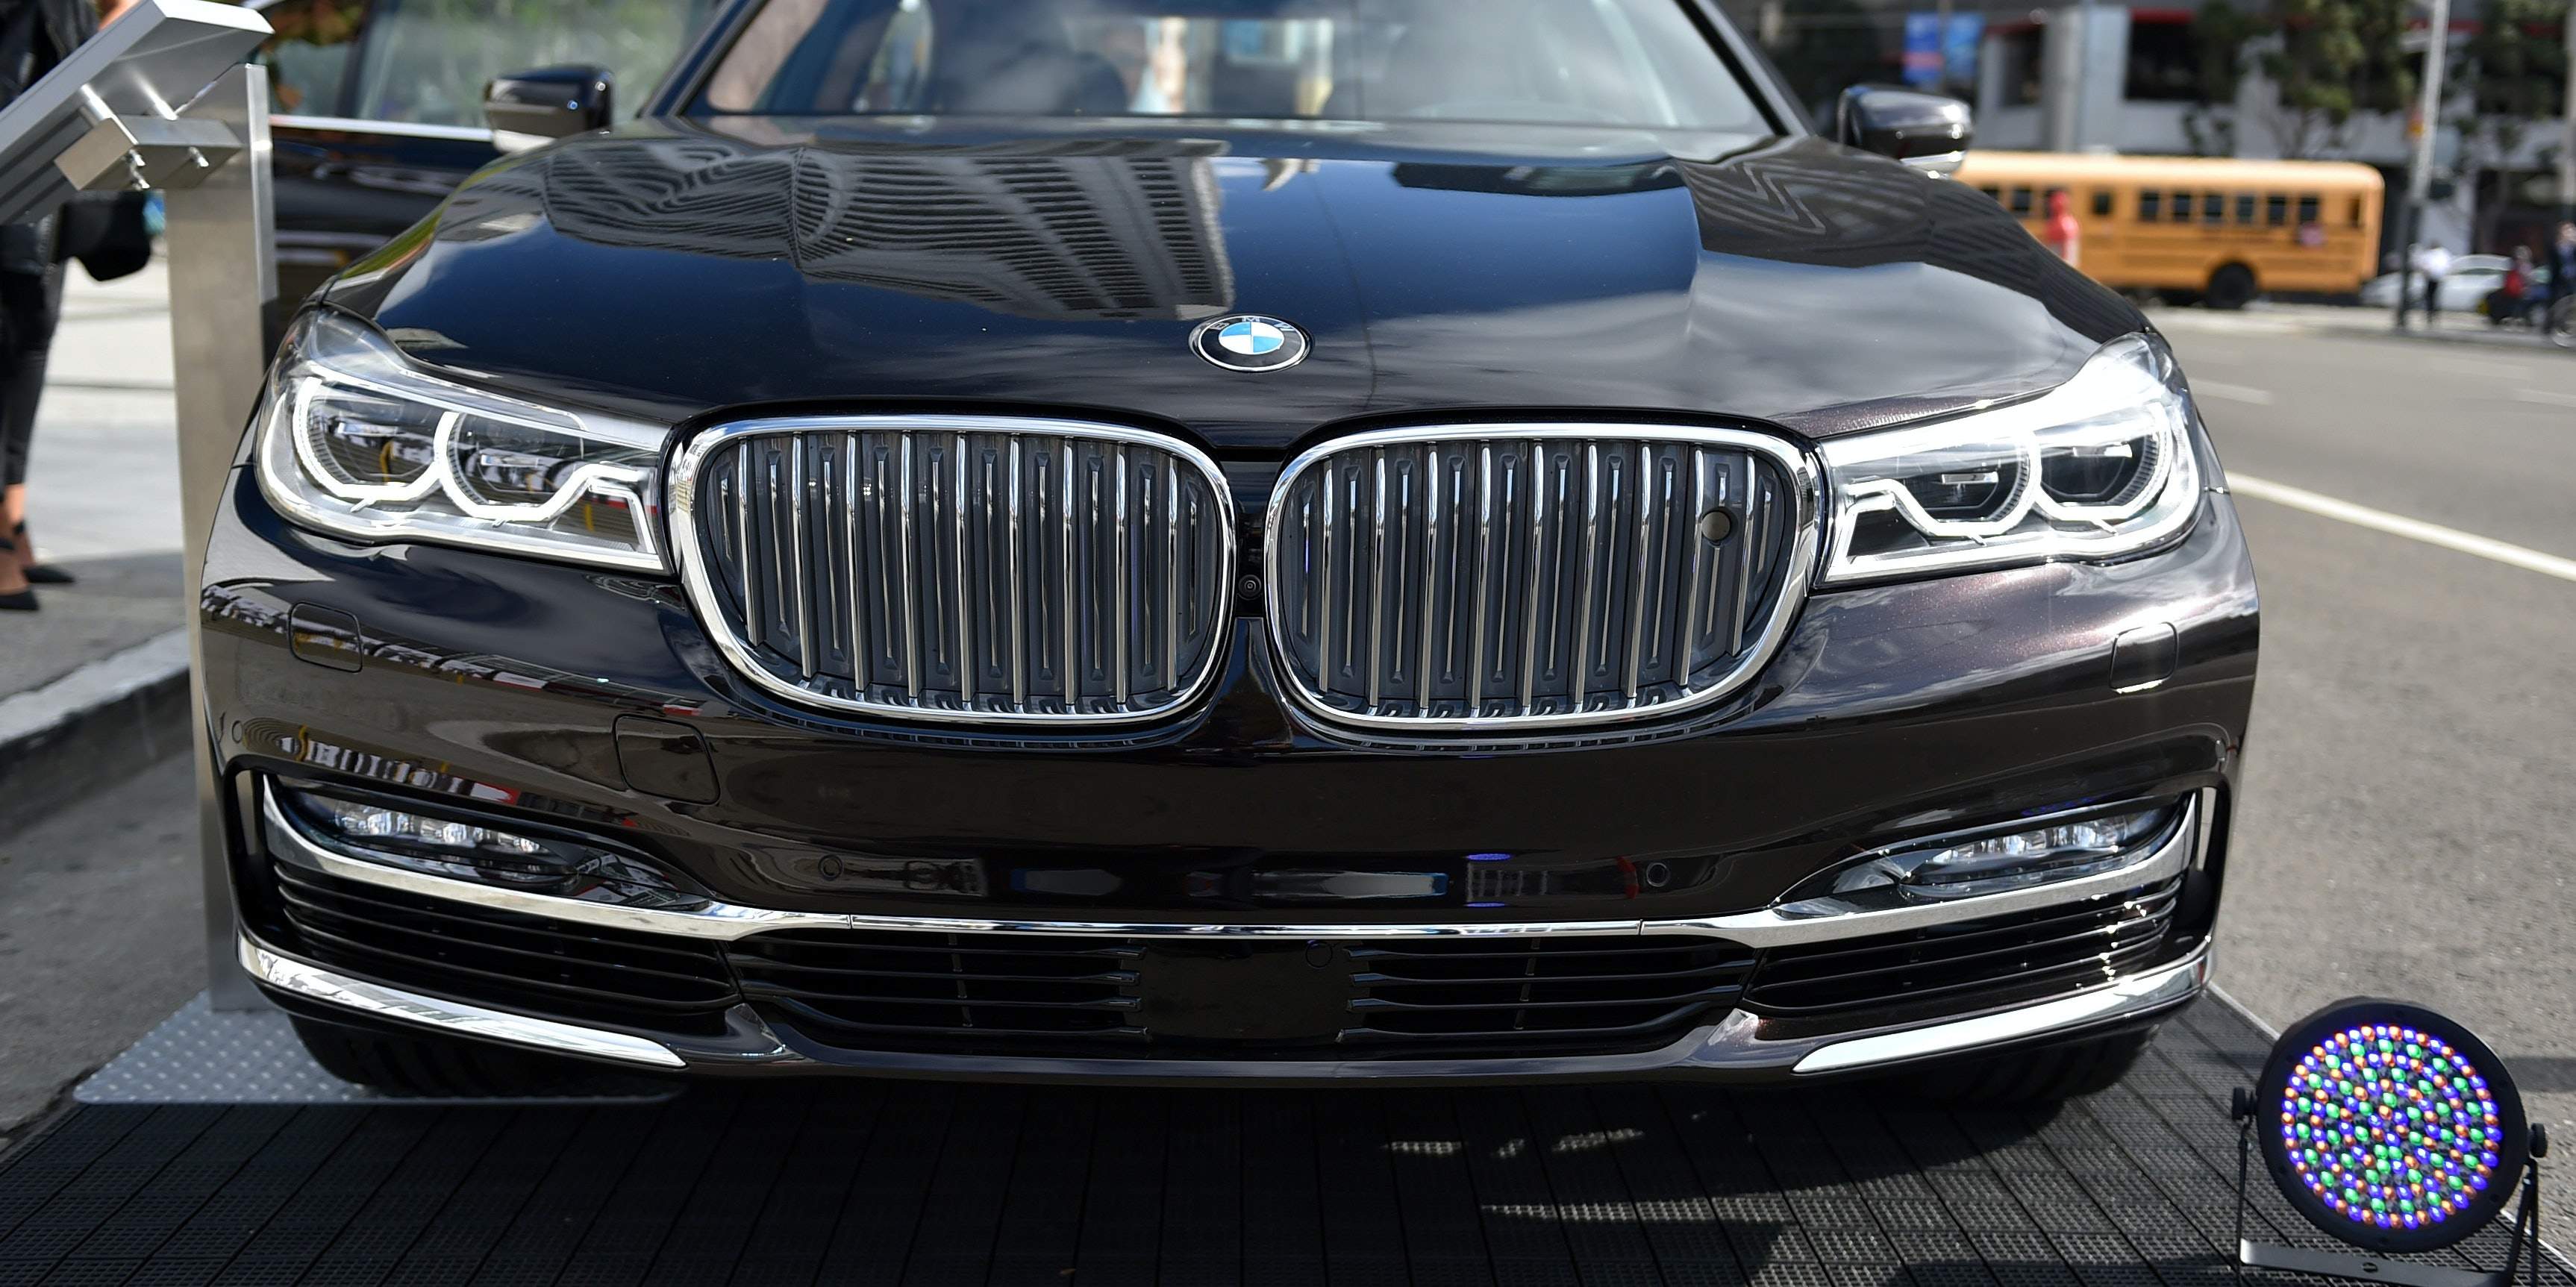 BMW car is displayed at the Vanity Fair New Establishment Summit at Yerba Buena Center for the Arts on October 6, 2015 in San Francisco, California.